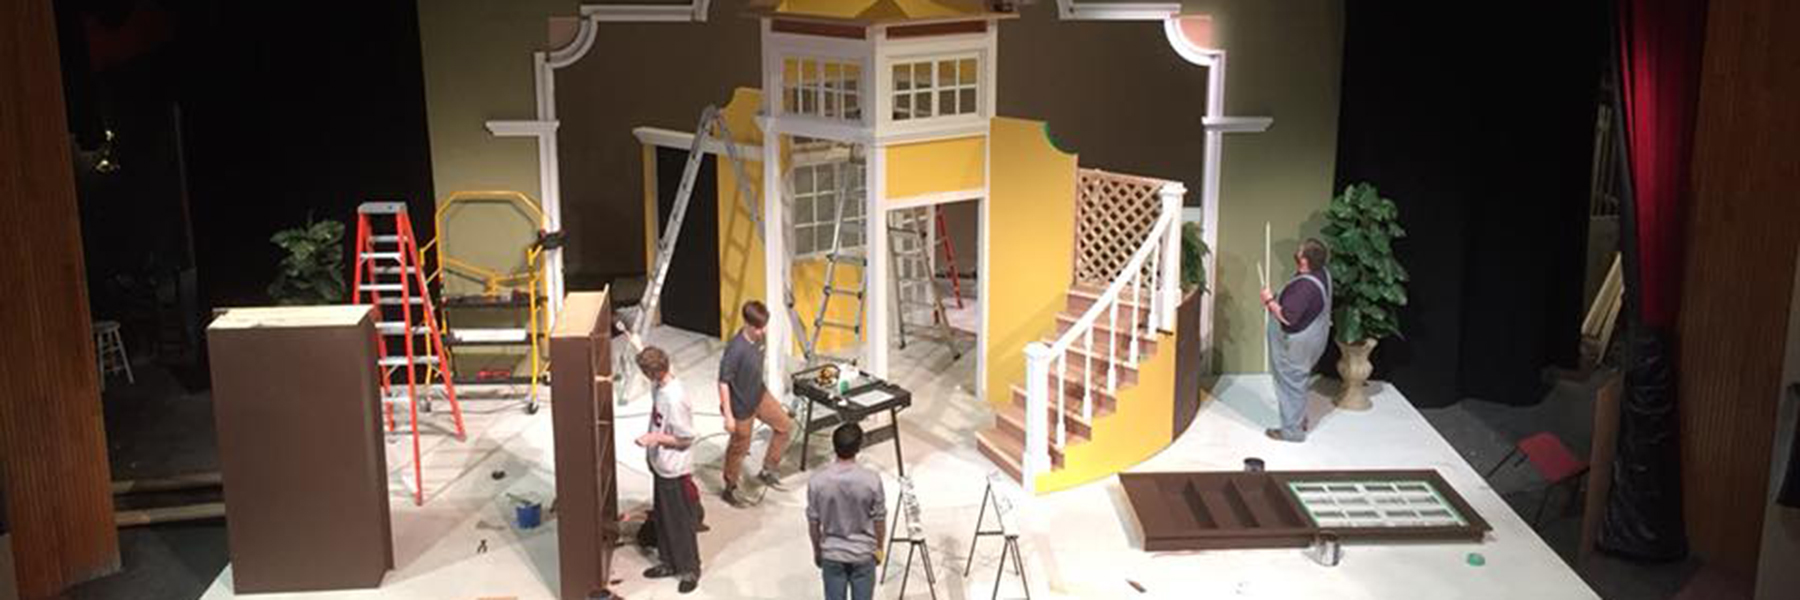 Theatre set under construction